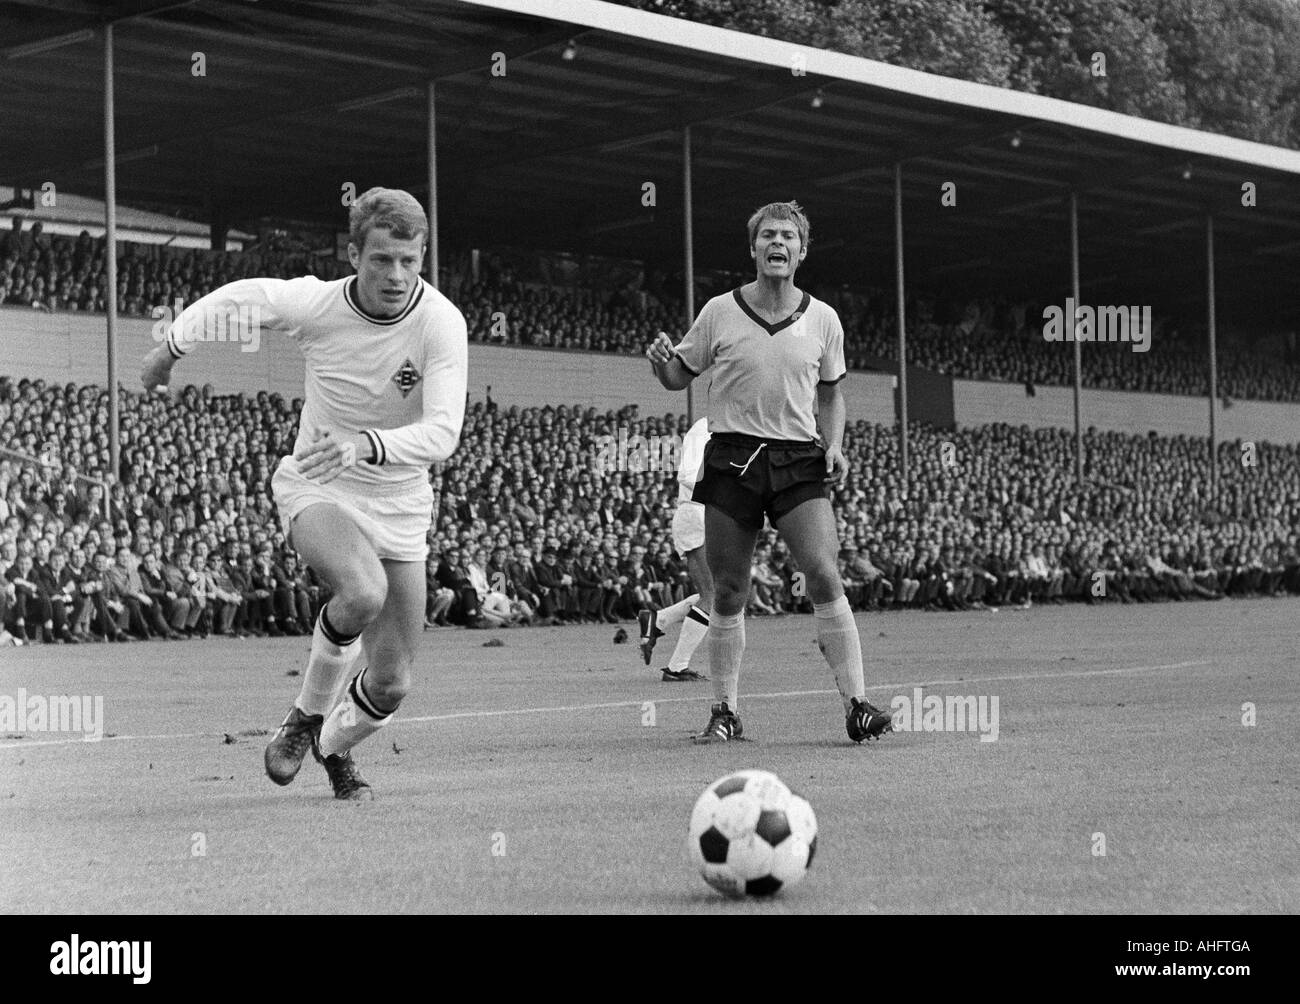 football, Bundesliga, 1968/1969, Borussia Dortmund versus Borussia Moenchengladbach 1:3, Stadium Rote Erde in Dortmund, scene of the match, left Herbert Wimmer (Gladbach), right Horst Trimhold (Dortmund) - Stock Image